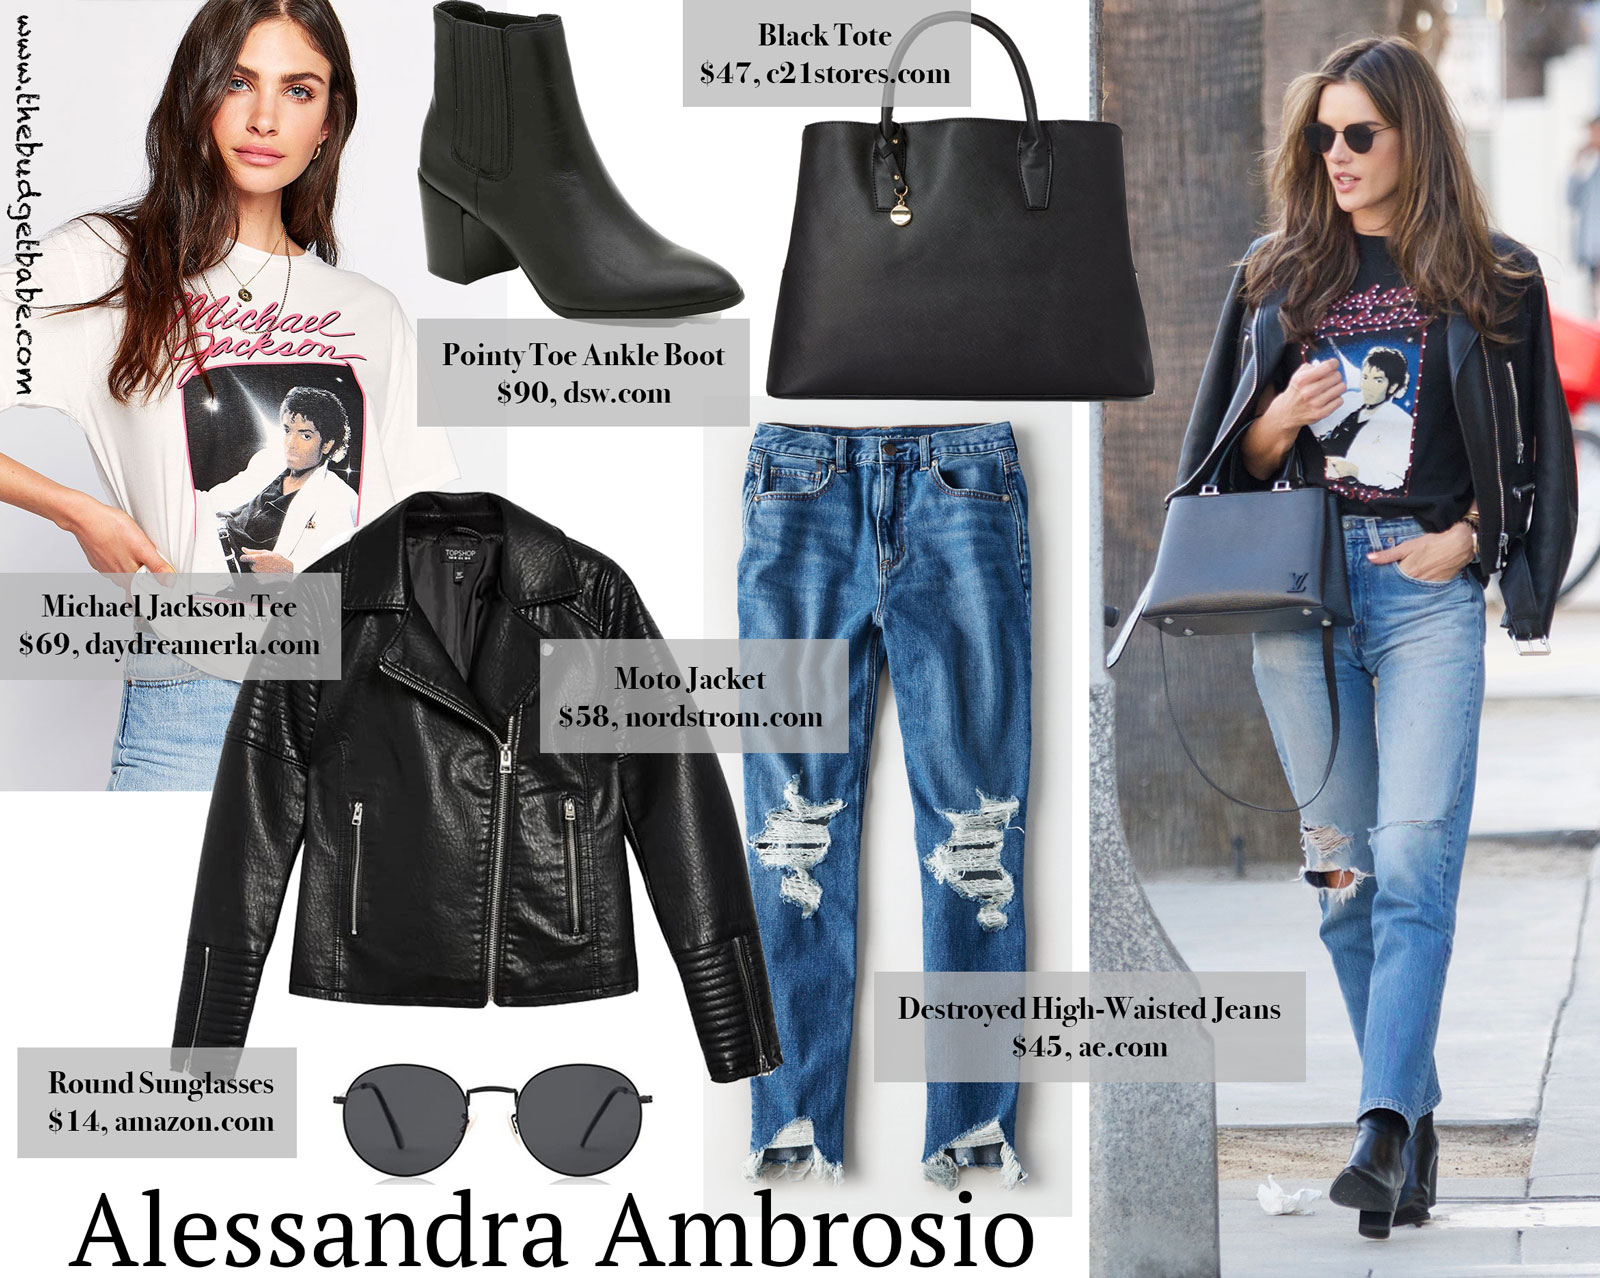 Alessandra Ambrosio Michael Jackson Tee Look for Less